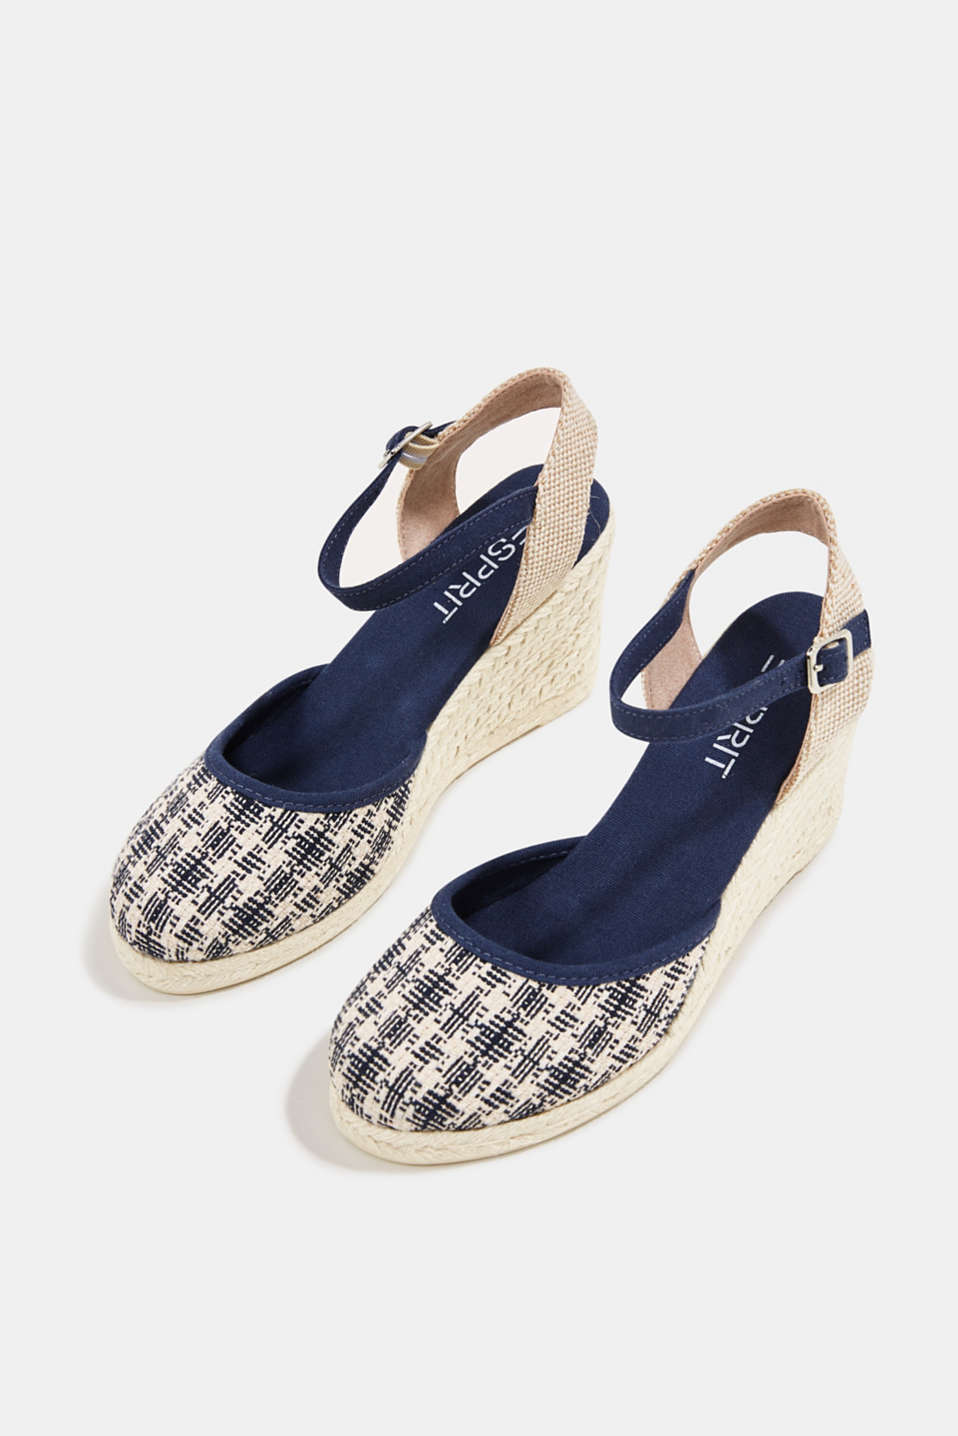 Espadrille sandals with a wedge heel, NAVY, detail image number 1